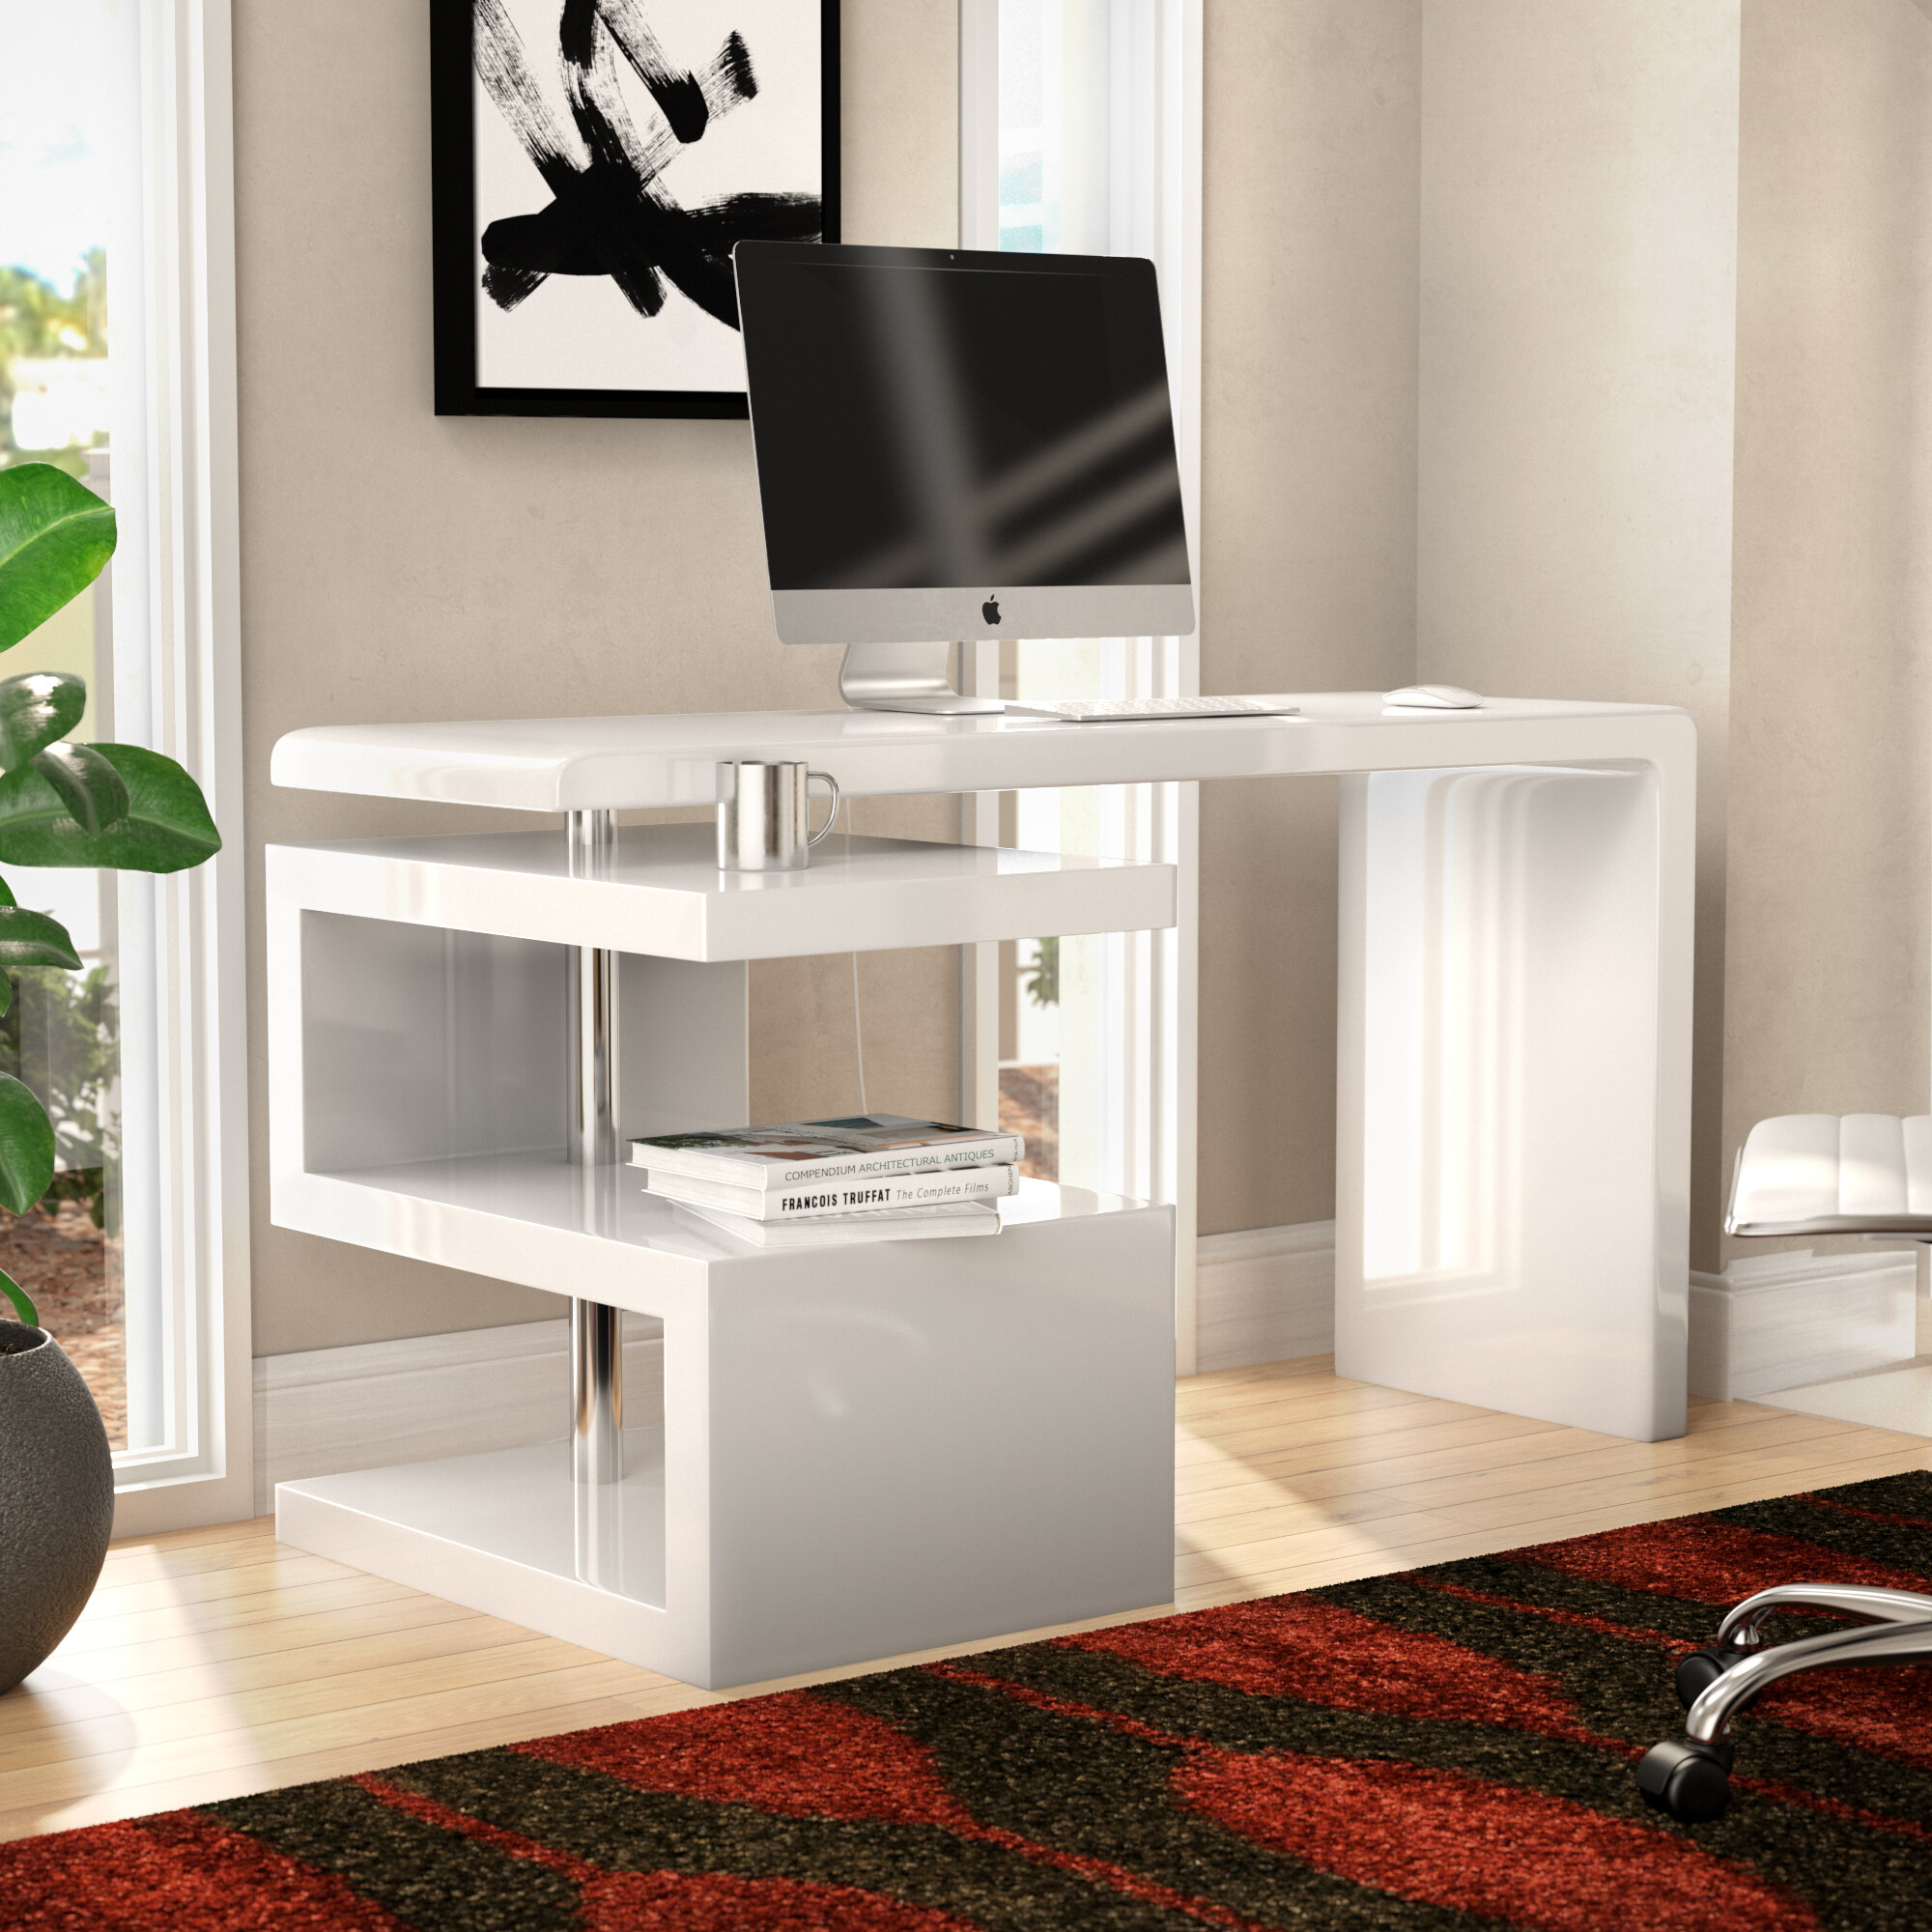 furniture garden computer home bush in espresso oak broadview today product desk overstock suite free table shipping office